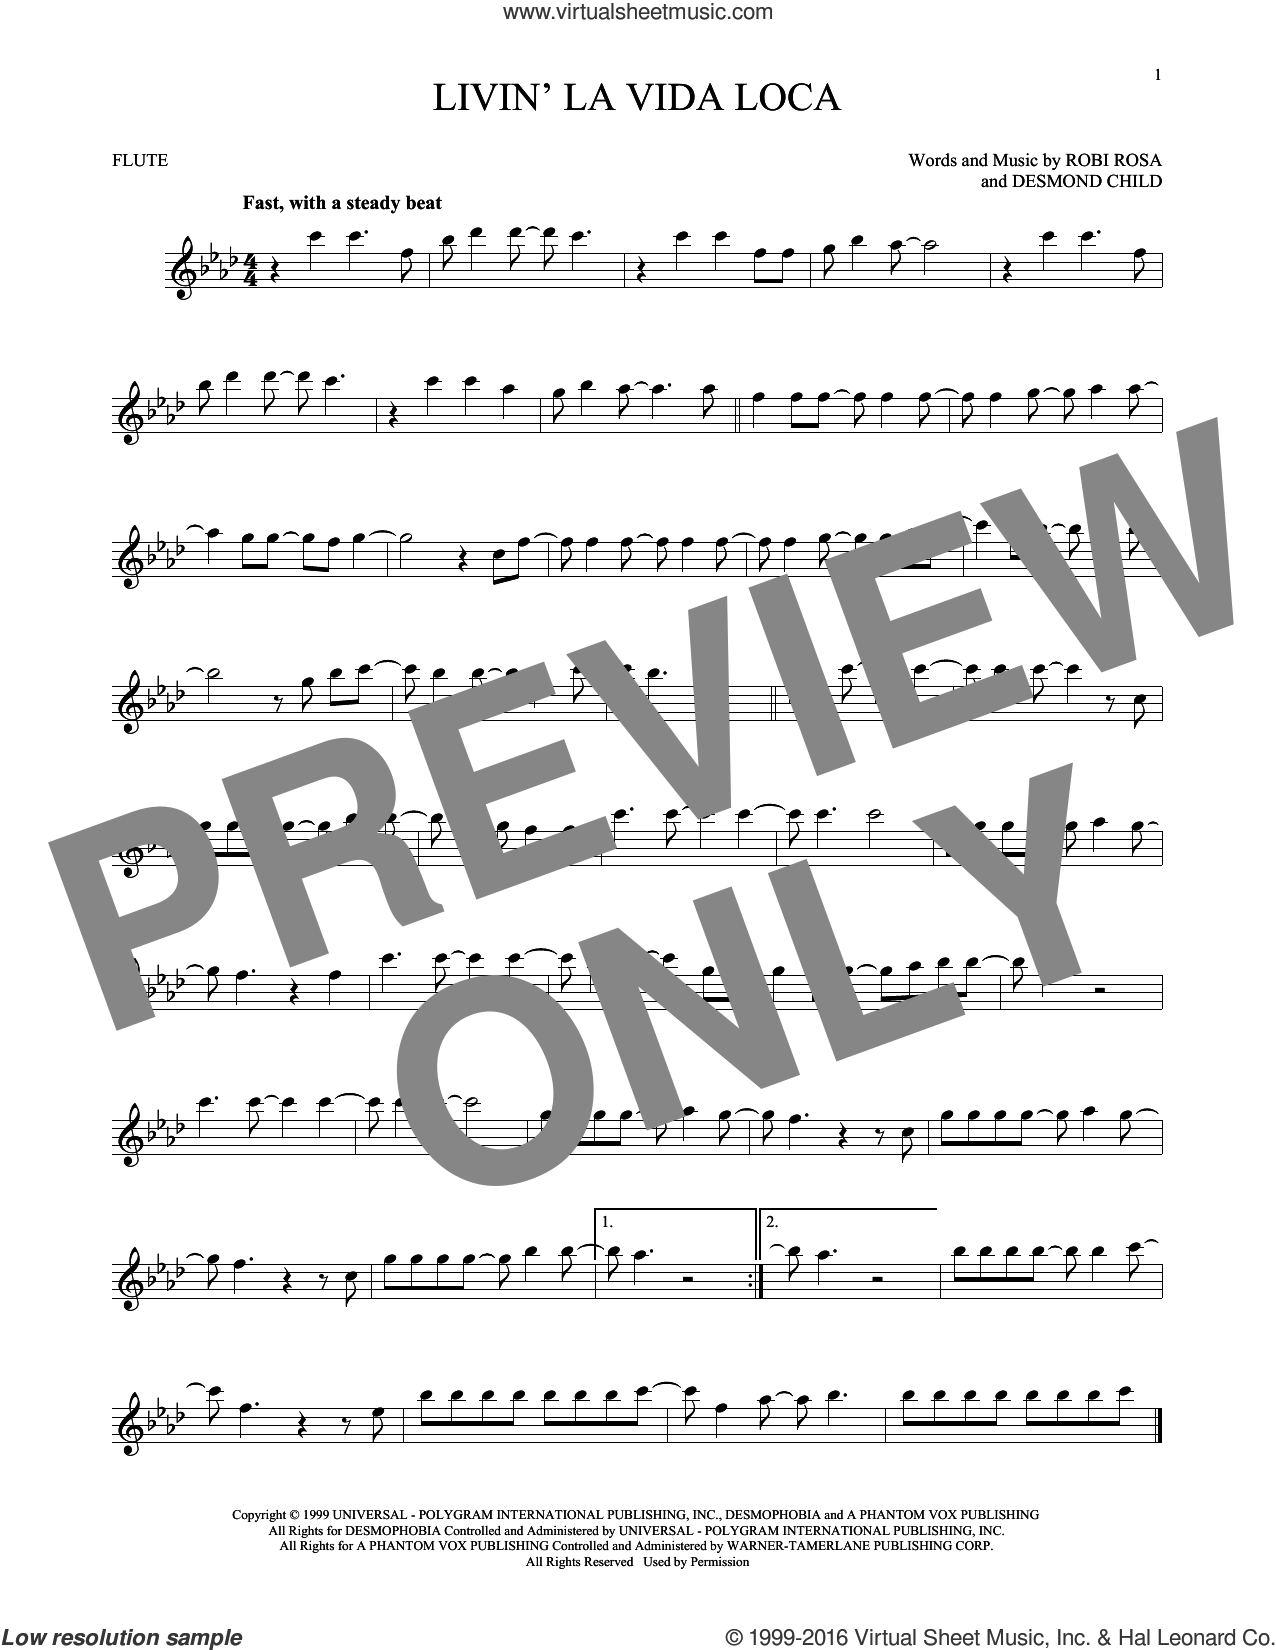 Livin' La Vida Loca sheet music for flute solo by Robi Rosa, Ricky Martin and Desmond Child. Score Image Preview.